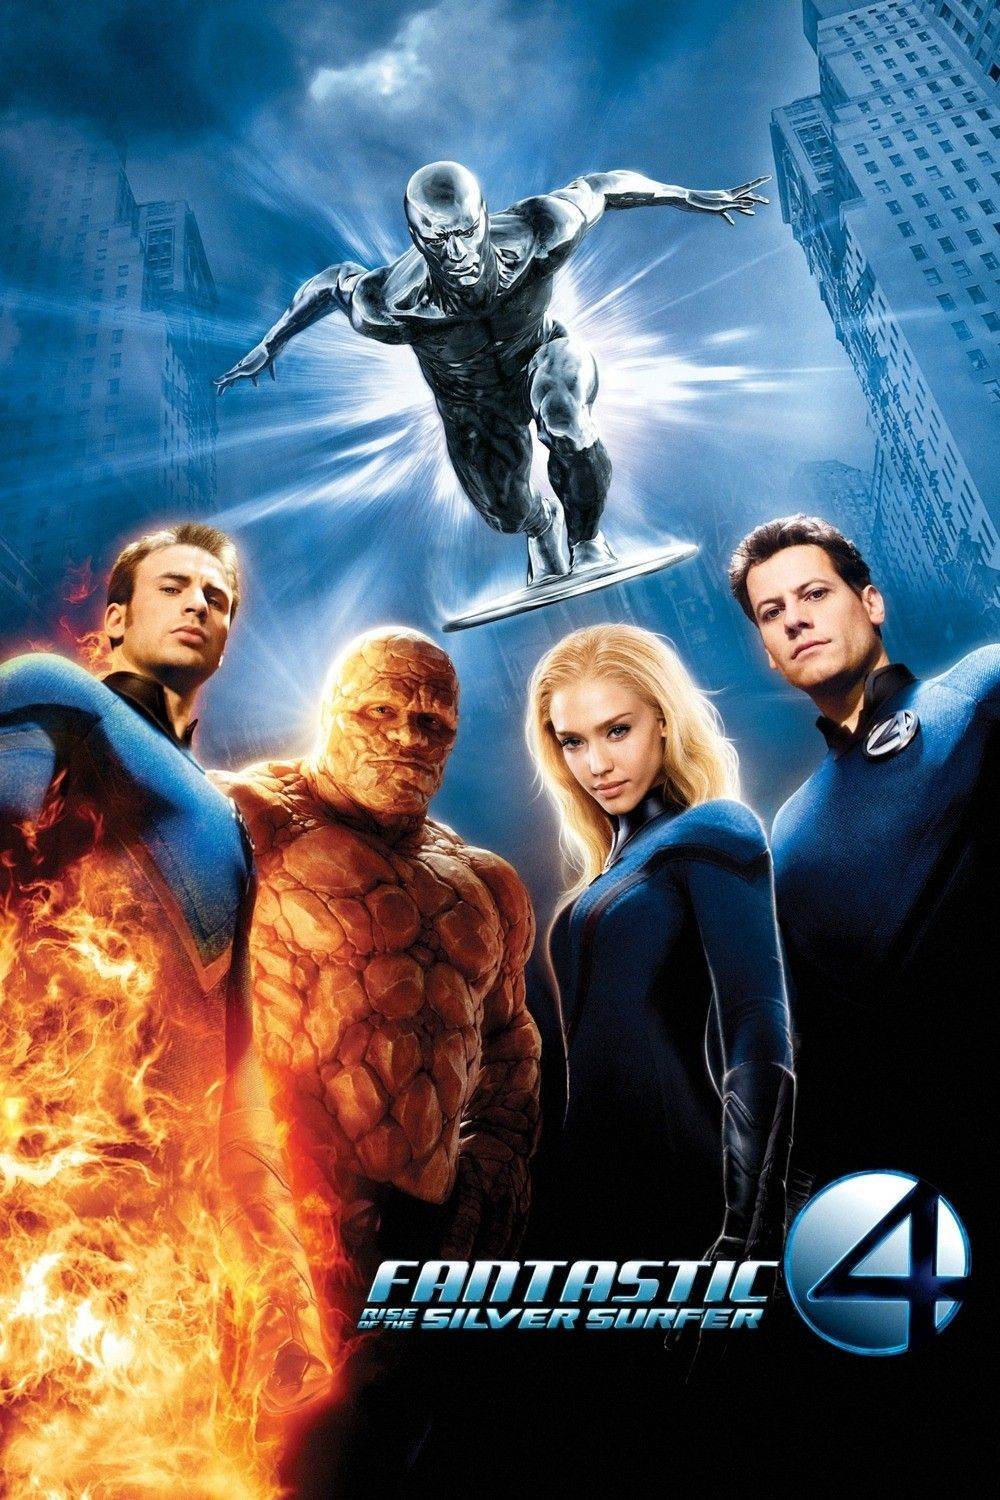 Fantastic 4 Rise Of The Silver Surfer Motion Pictures